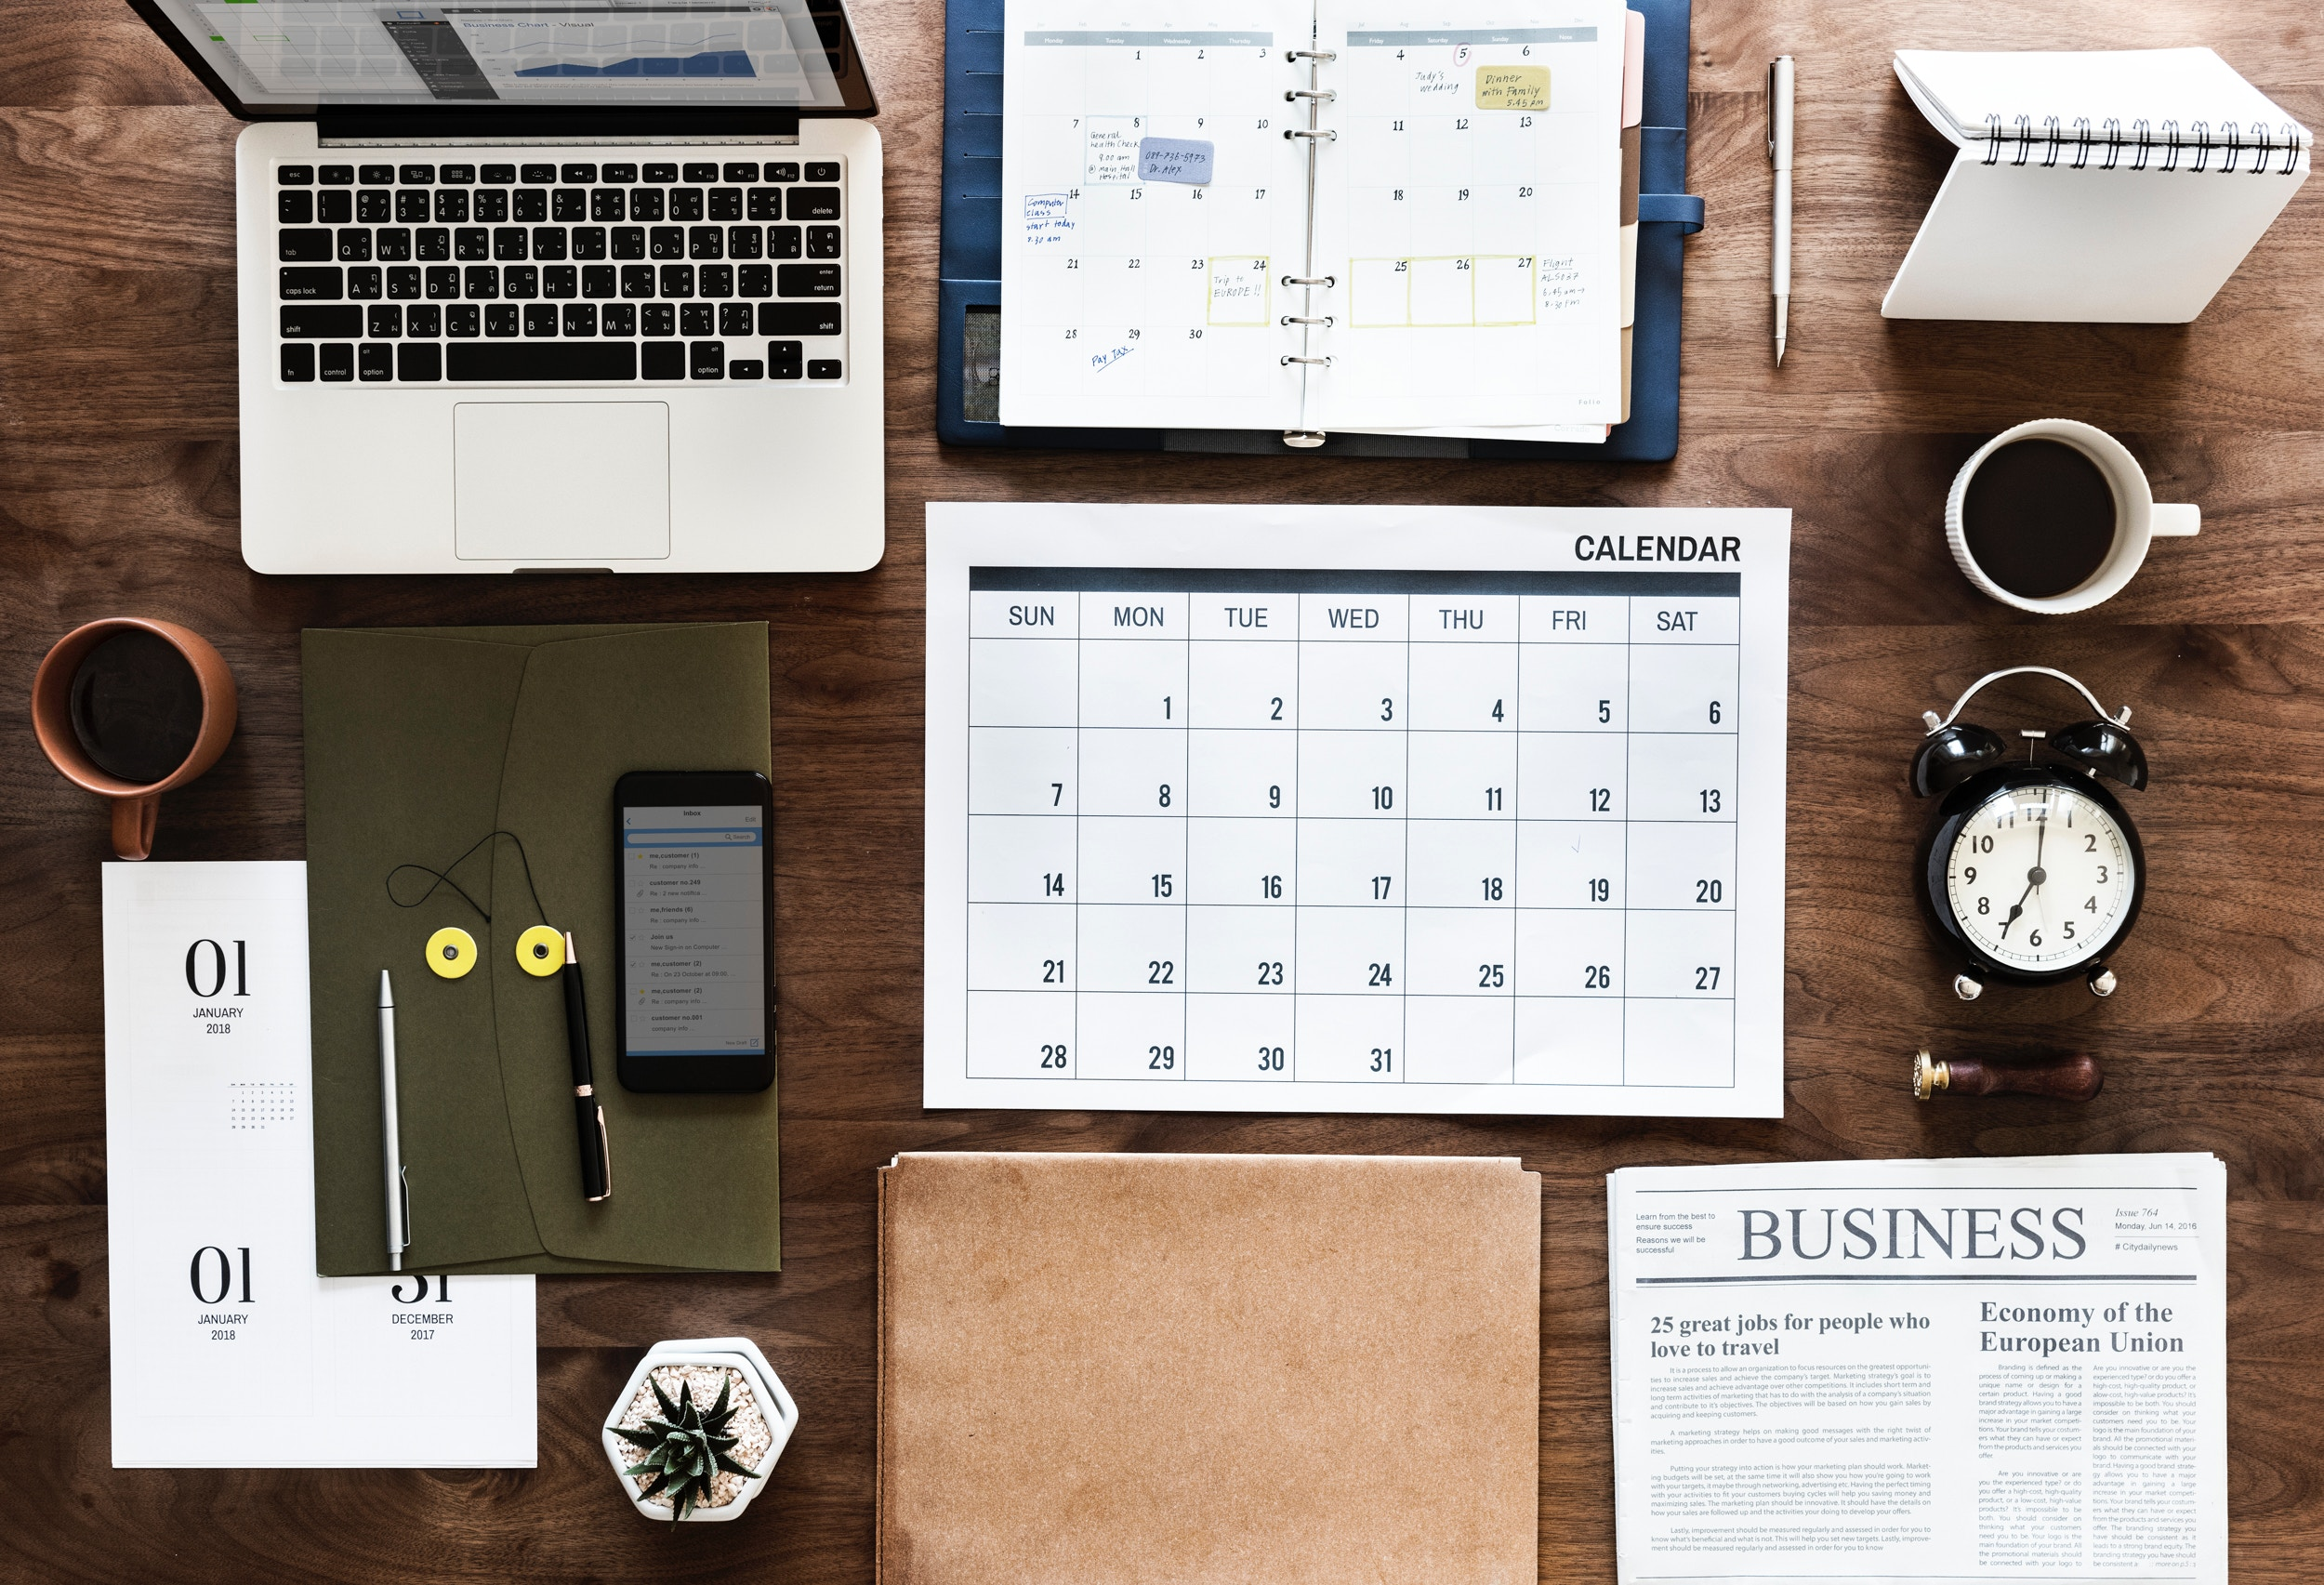 Where to find freelance writing gigs, part 3: warm pitching, MultiTalented Writers. Well organized desk with laptop, planner, calendar, cell phone, plant, a folder, a clock, and a newspaper turned to the business section. Photo by rawpixel on Unsplash